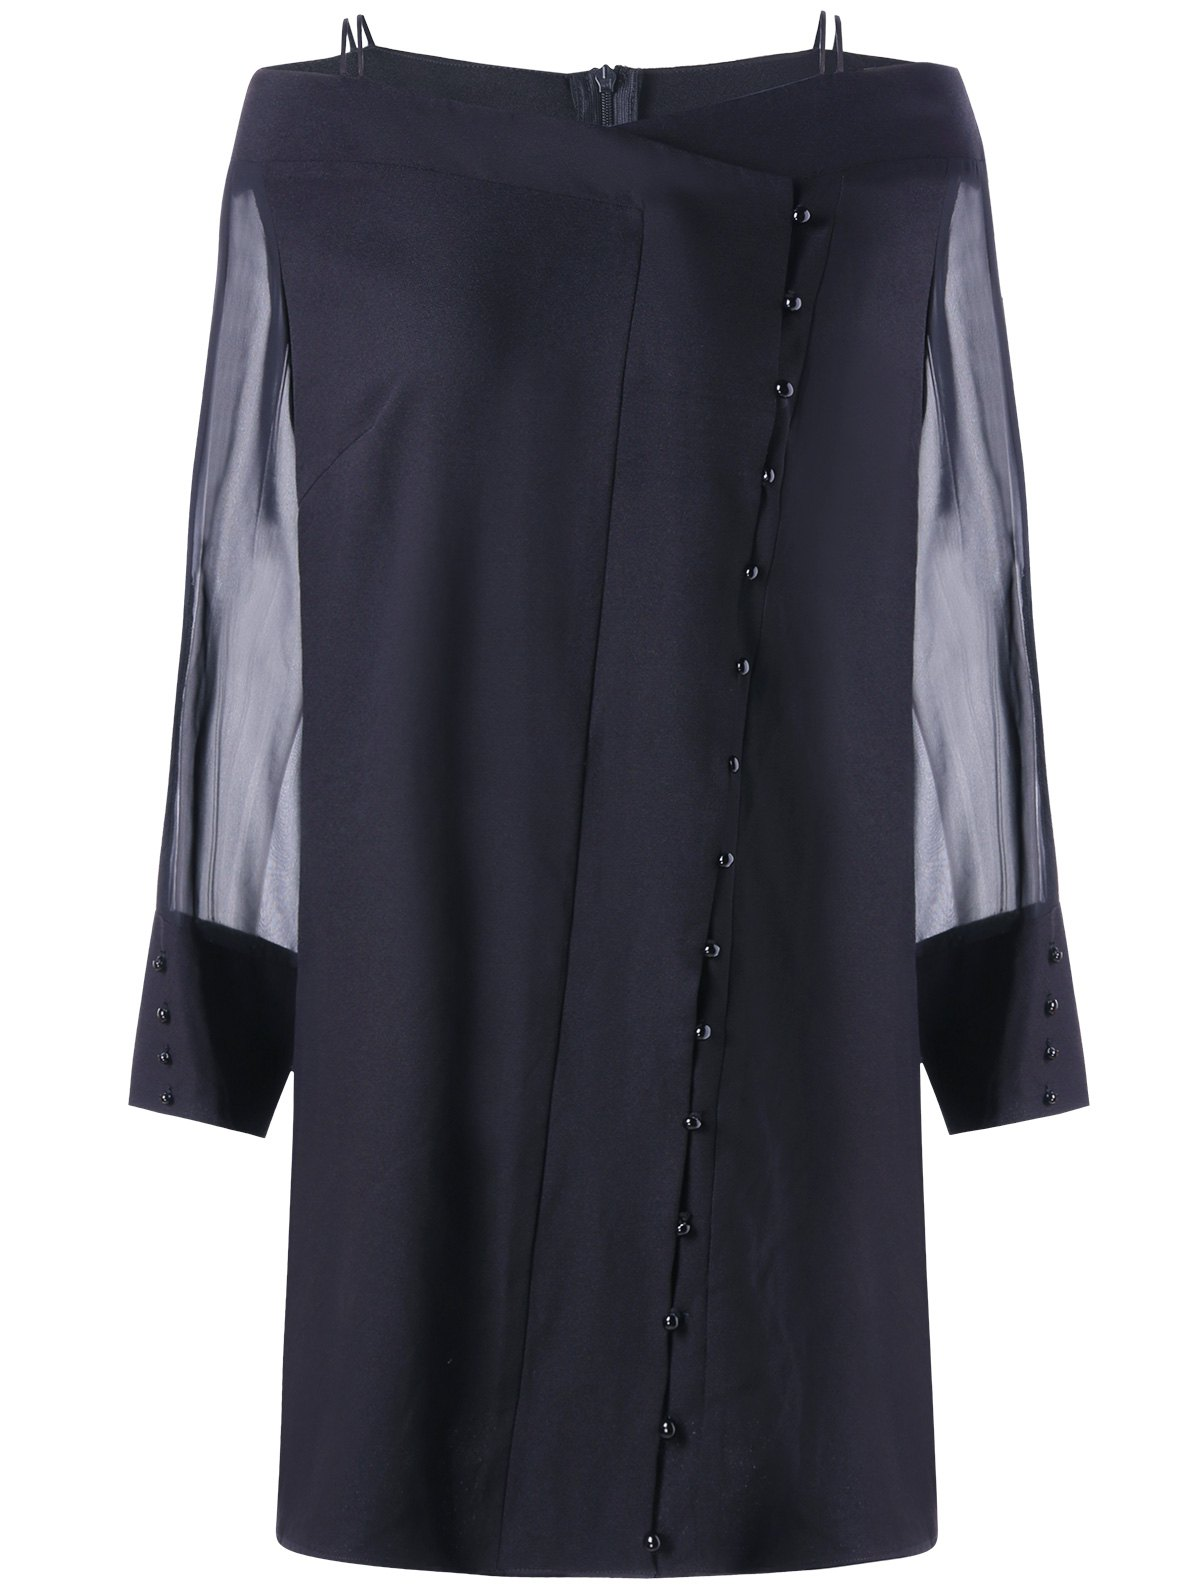 Sheer Long Sleeve Button Plus Size Dress - BLACK 5XL